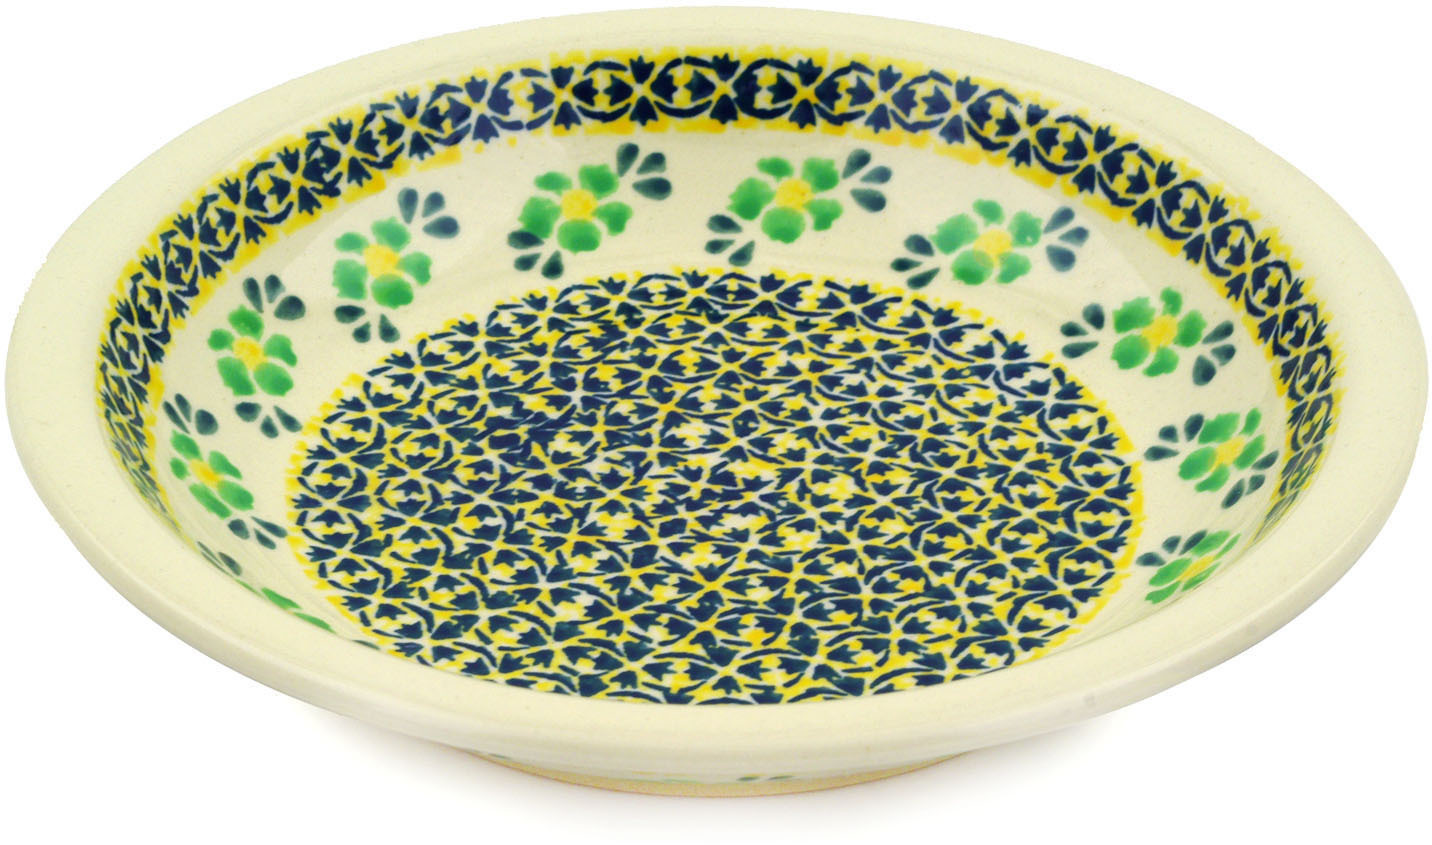 Polish Pottery 9-inch Pasta Bowl (Lime Flowers Theme) Hand Painted in Boleslawiec, Poland + Certificate of... by Zaklady Ceramiczne